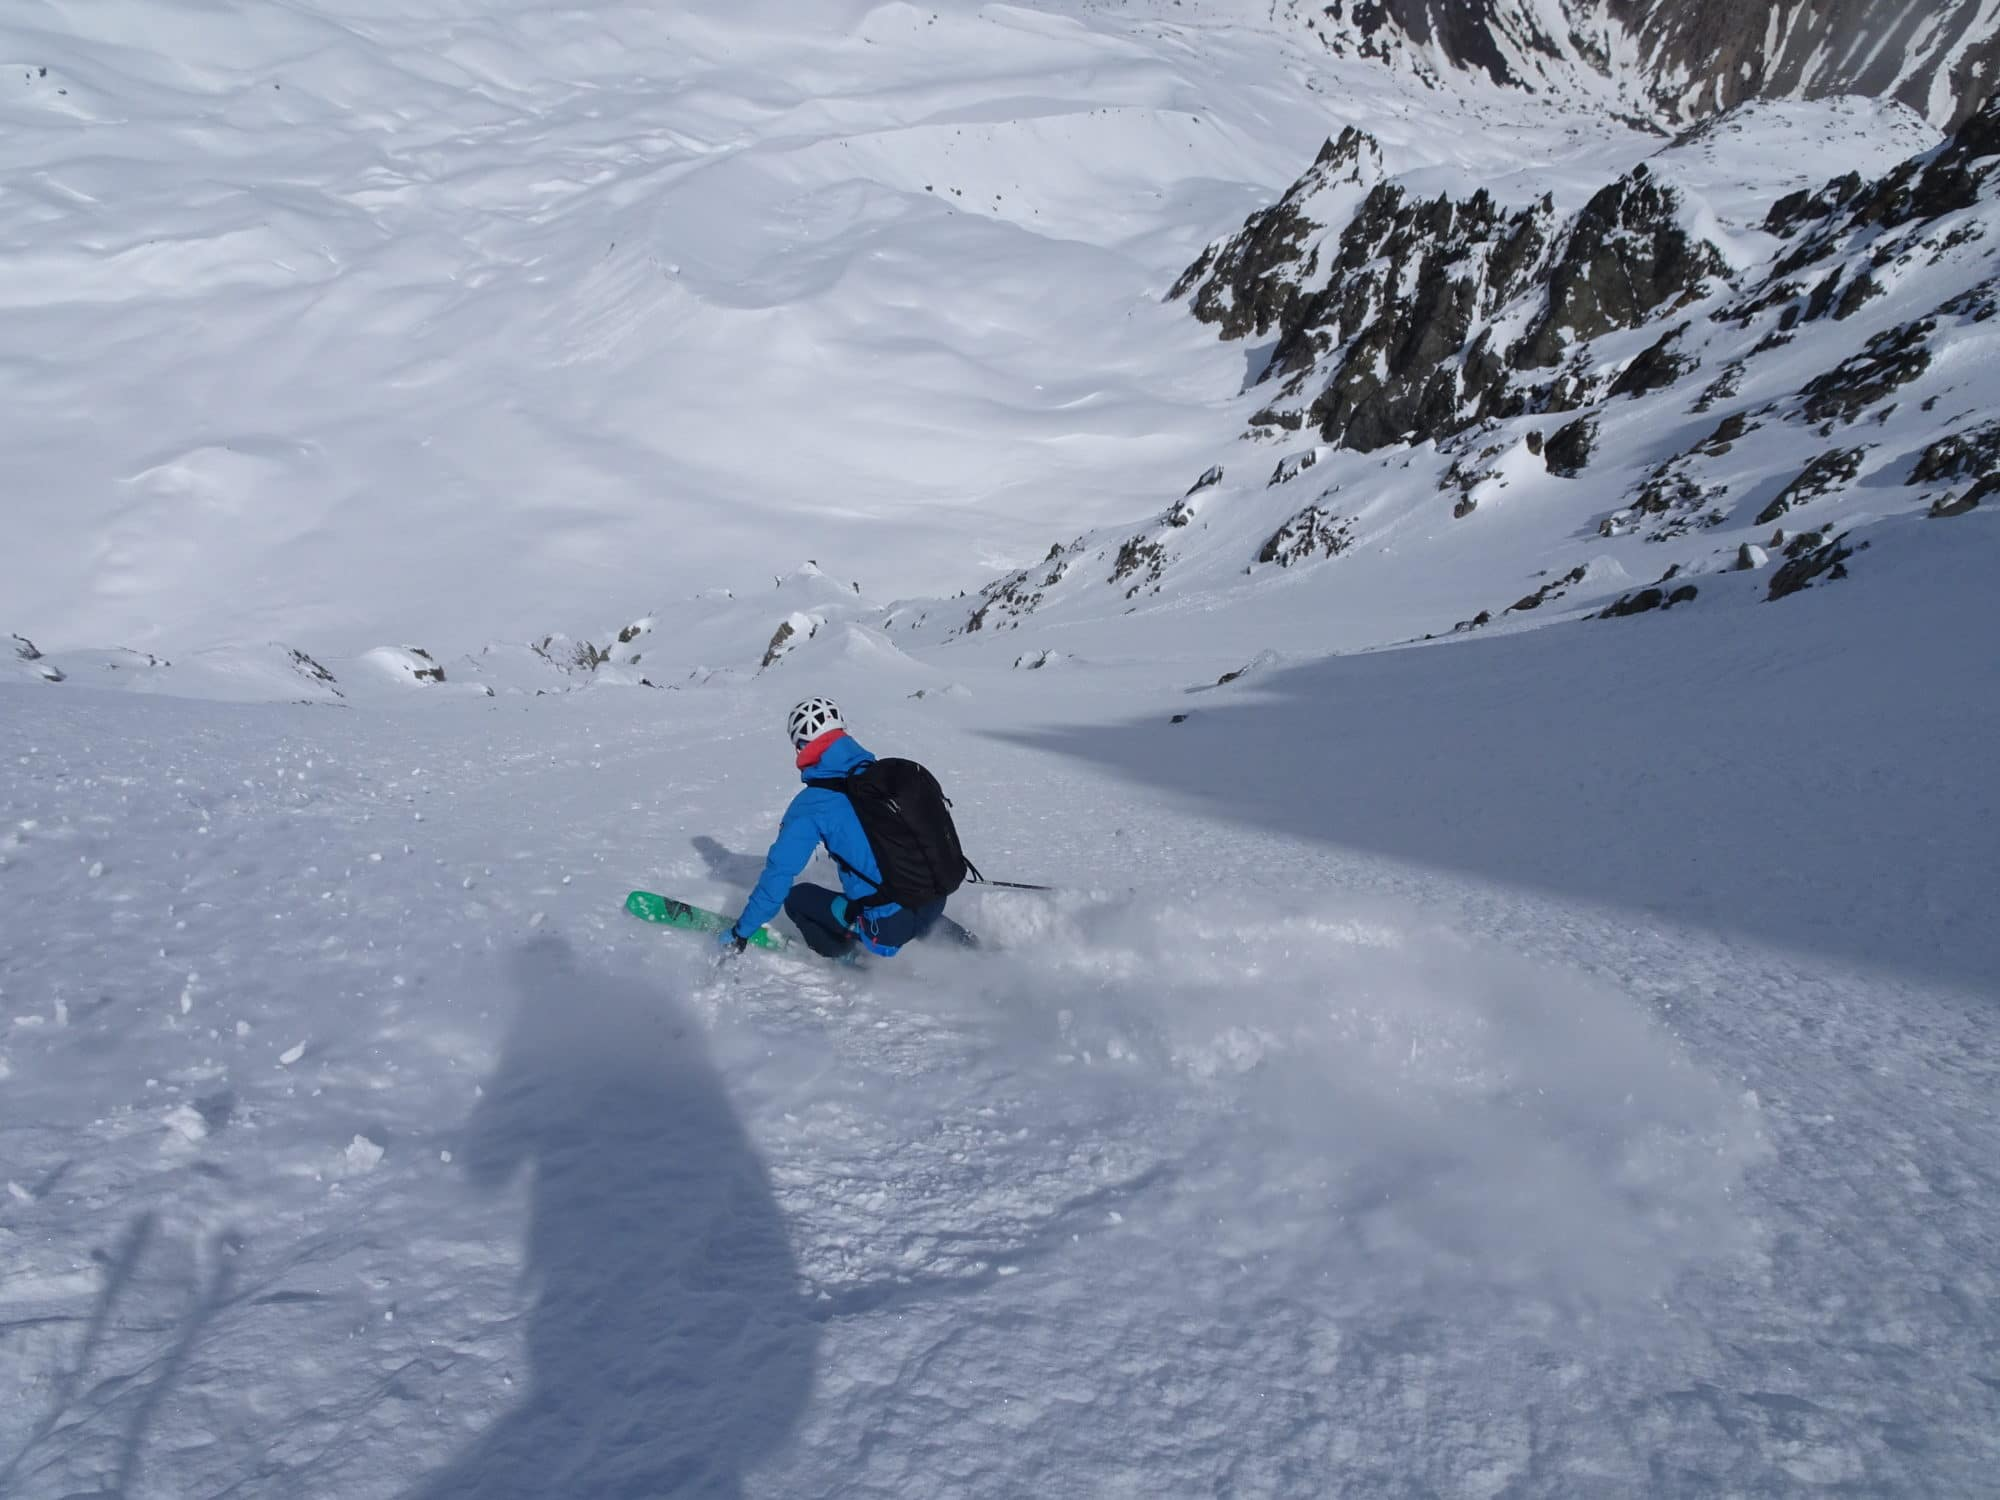 Couloir Piaget, Laure en descente. Photo Helyum.ch.